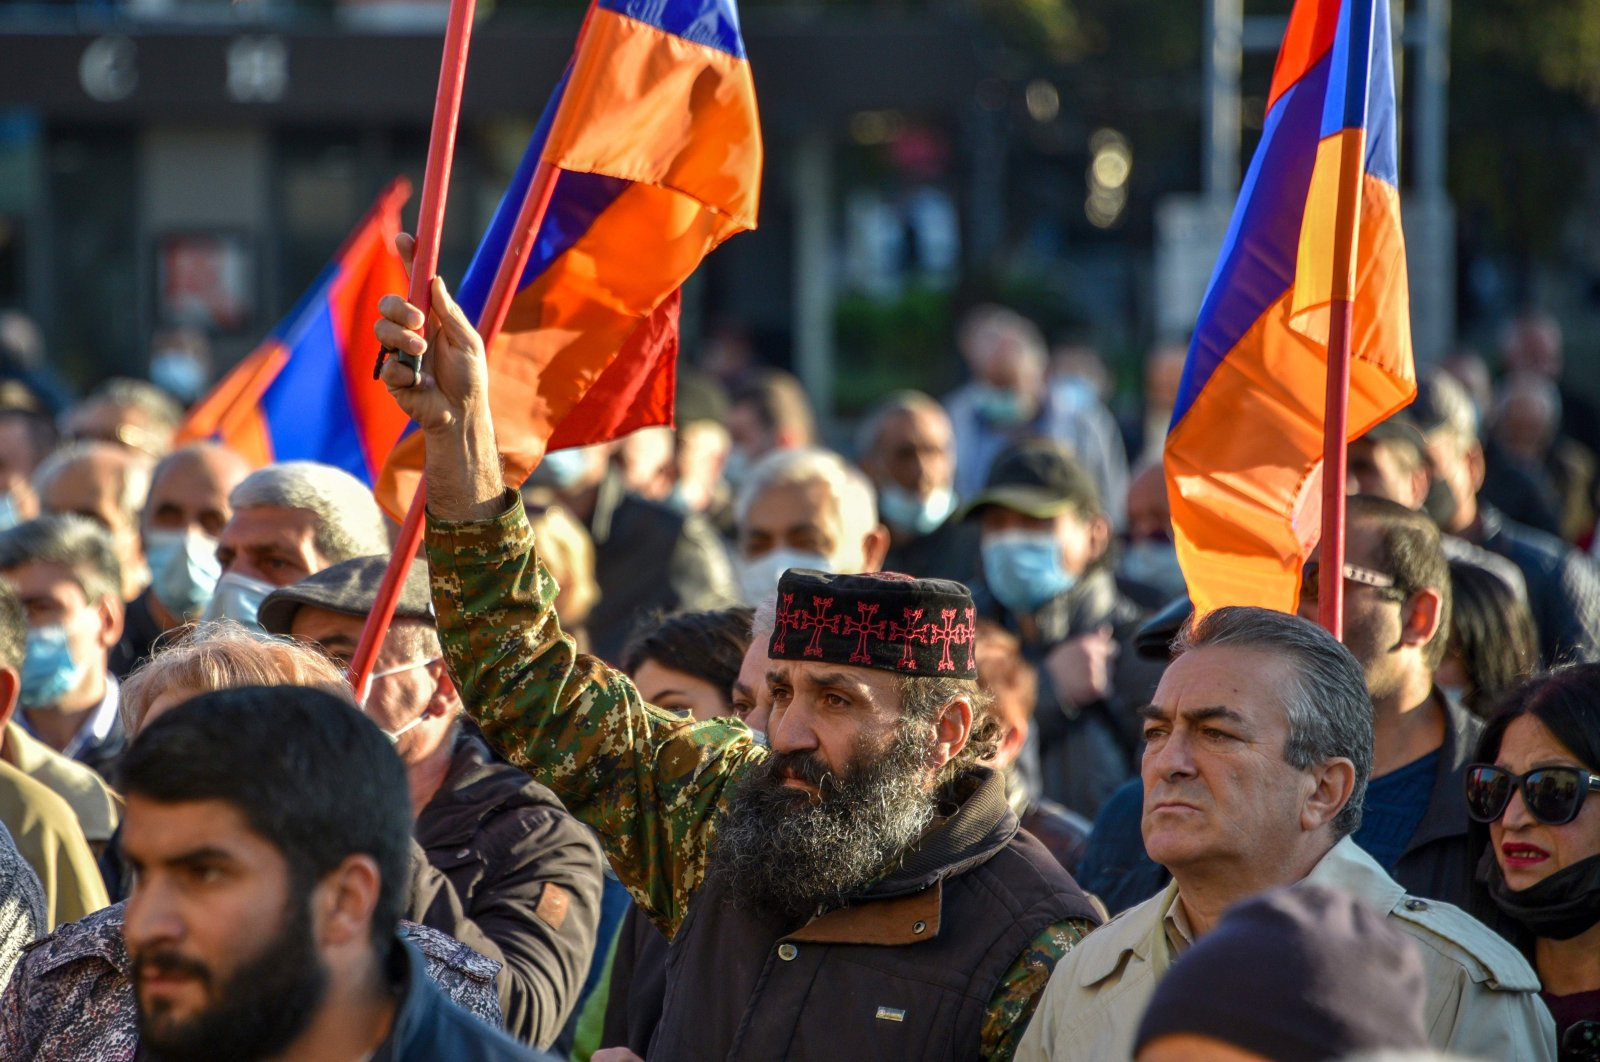 People protest during a rally against the country's agreement to end fighting with Azerbaijan over the Nagorno-Karabakh region in Yerevan, Armenia, Nov. 12, 2020. (AFP Photo)